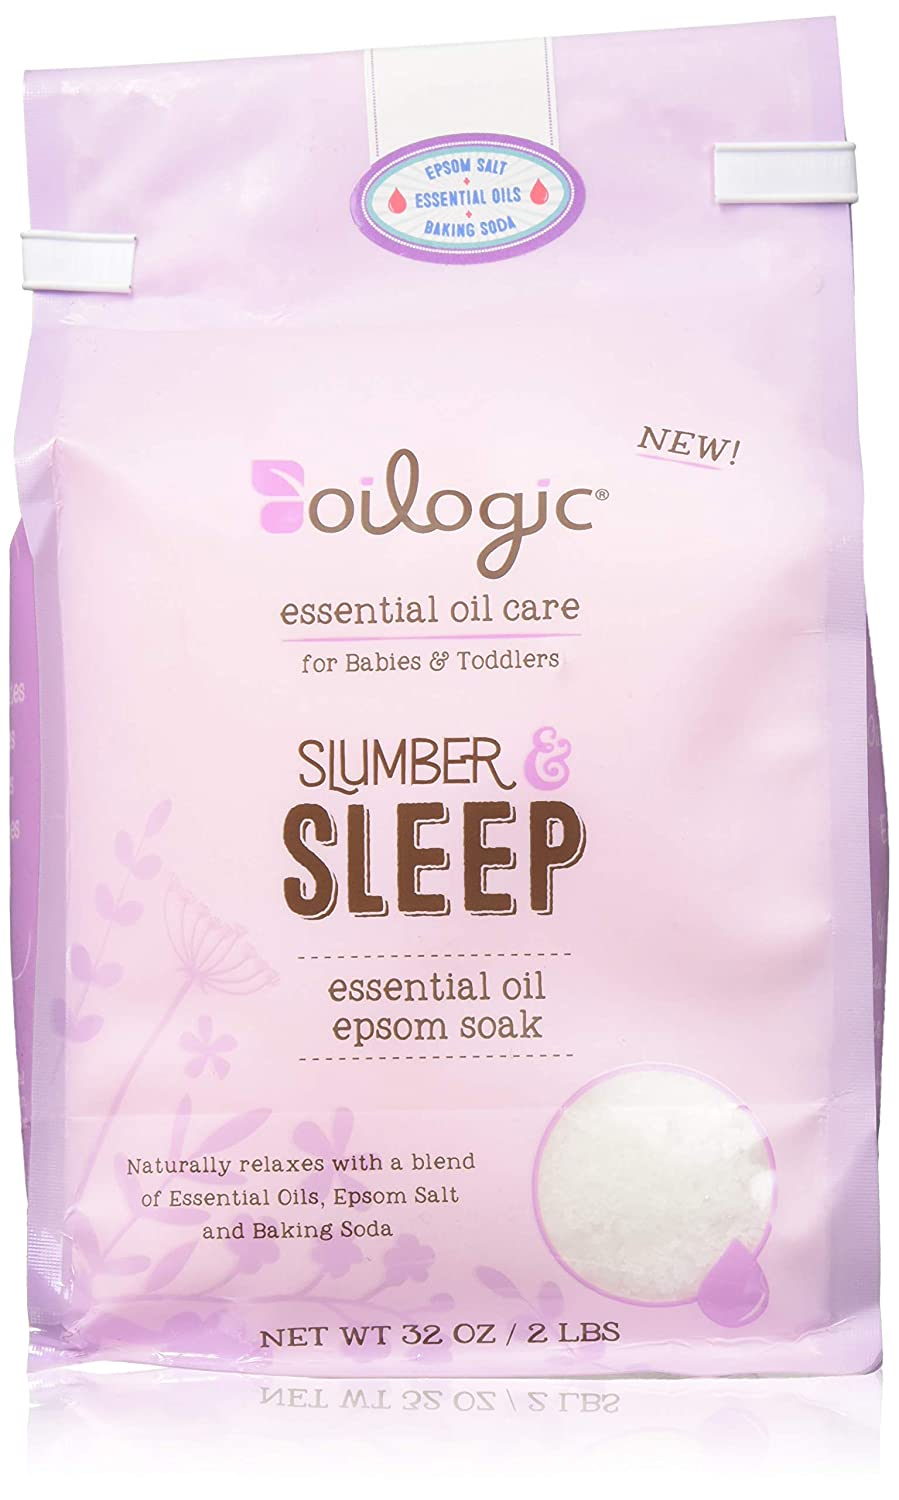 Slumber & Sleep Essential Oil Epsom Soak